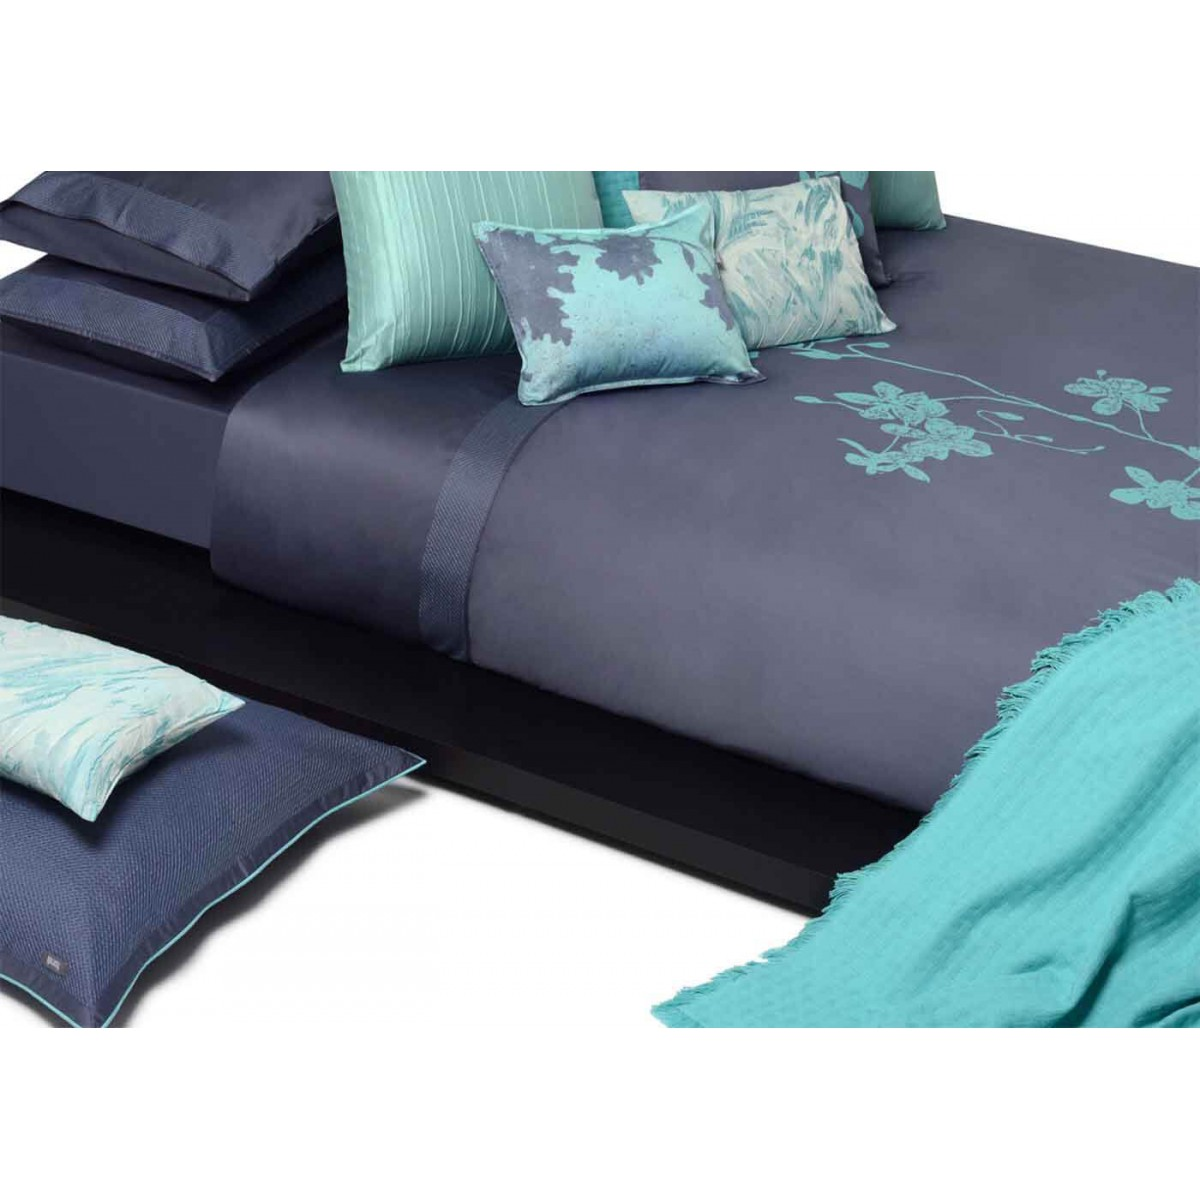 drap housse bleu fonc linge de maison batik chic par home concept. Black Bedroom Furniture Sets. Home Design Ideas